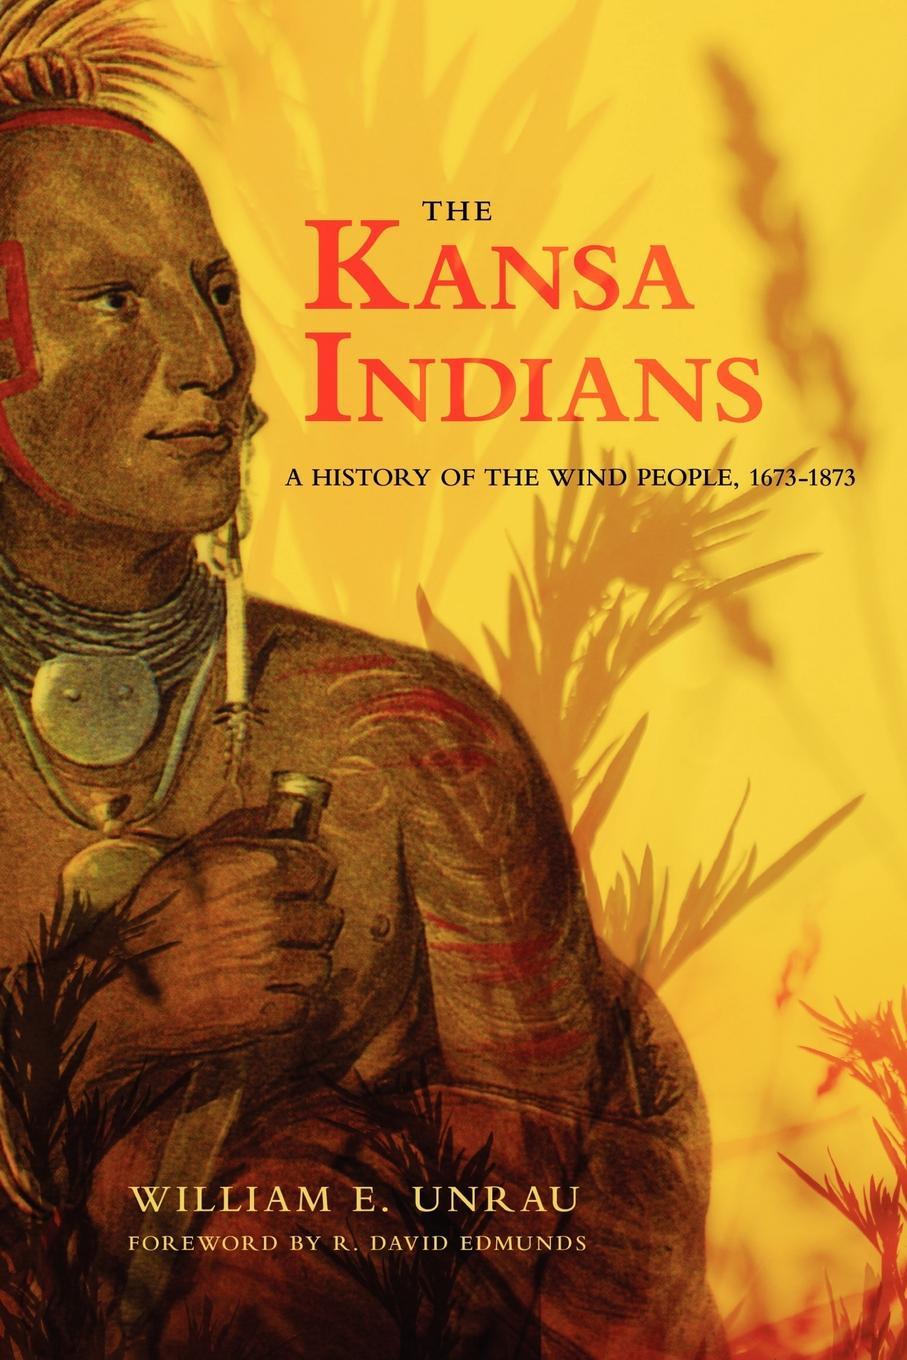 William E. Unrau, H. Craig Miner The Kansa Indians. A History of the Wind People, 1673-1873 william e unrau h craig miner the kansa indians a history of the wind people 1673 1873